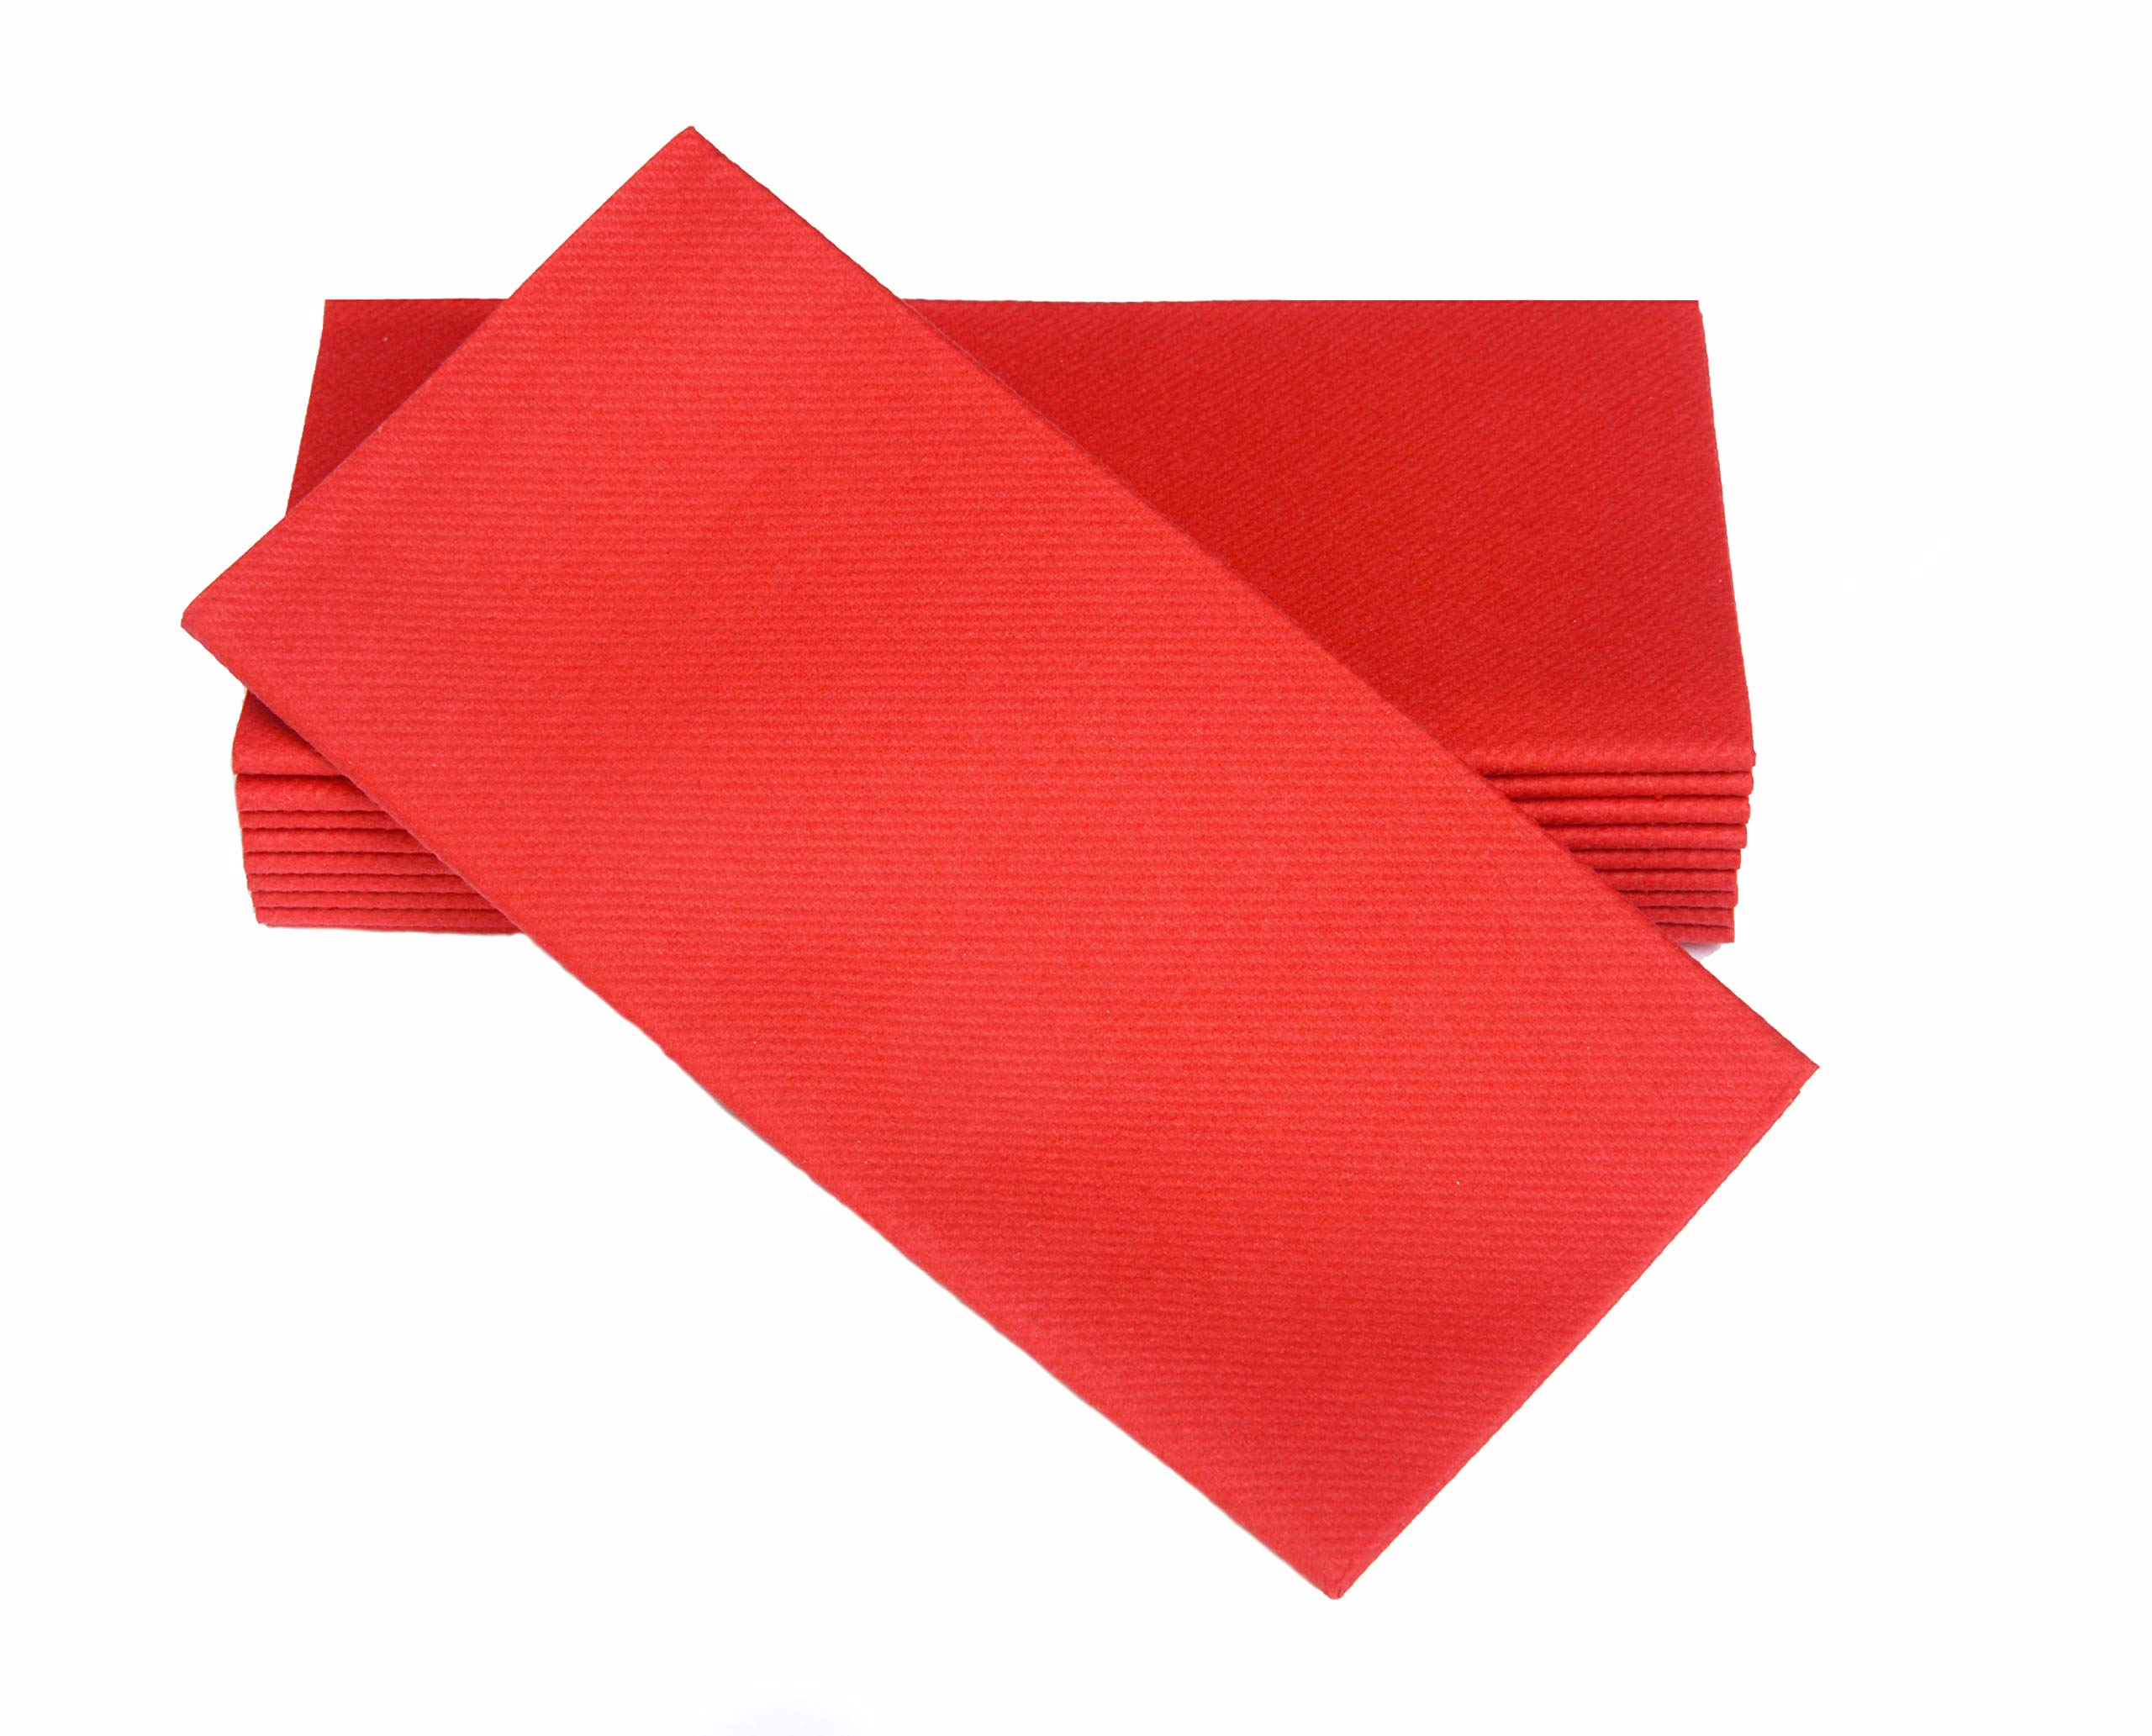 """Simulinen Colored Napkins - Decorative Cloth Like & Disposable, Dinner Napkins - RED - Soft, Absorbent & Durable - 16""""x16"""" - Great for Any Occasion! - Box of 50"""